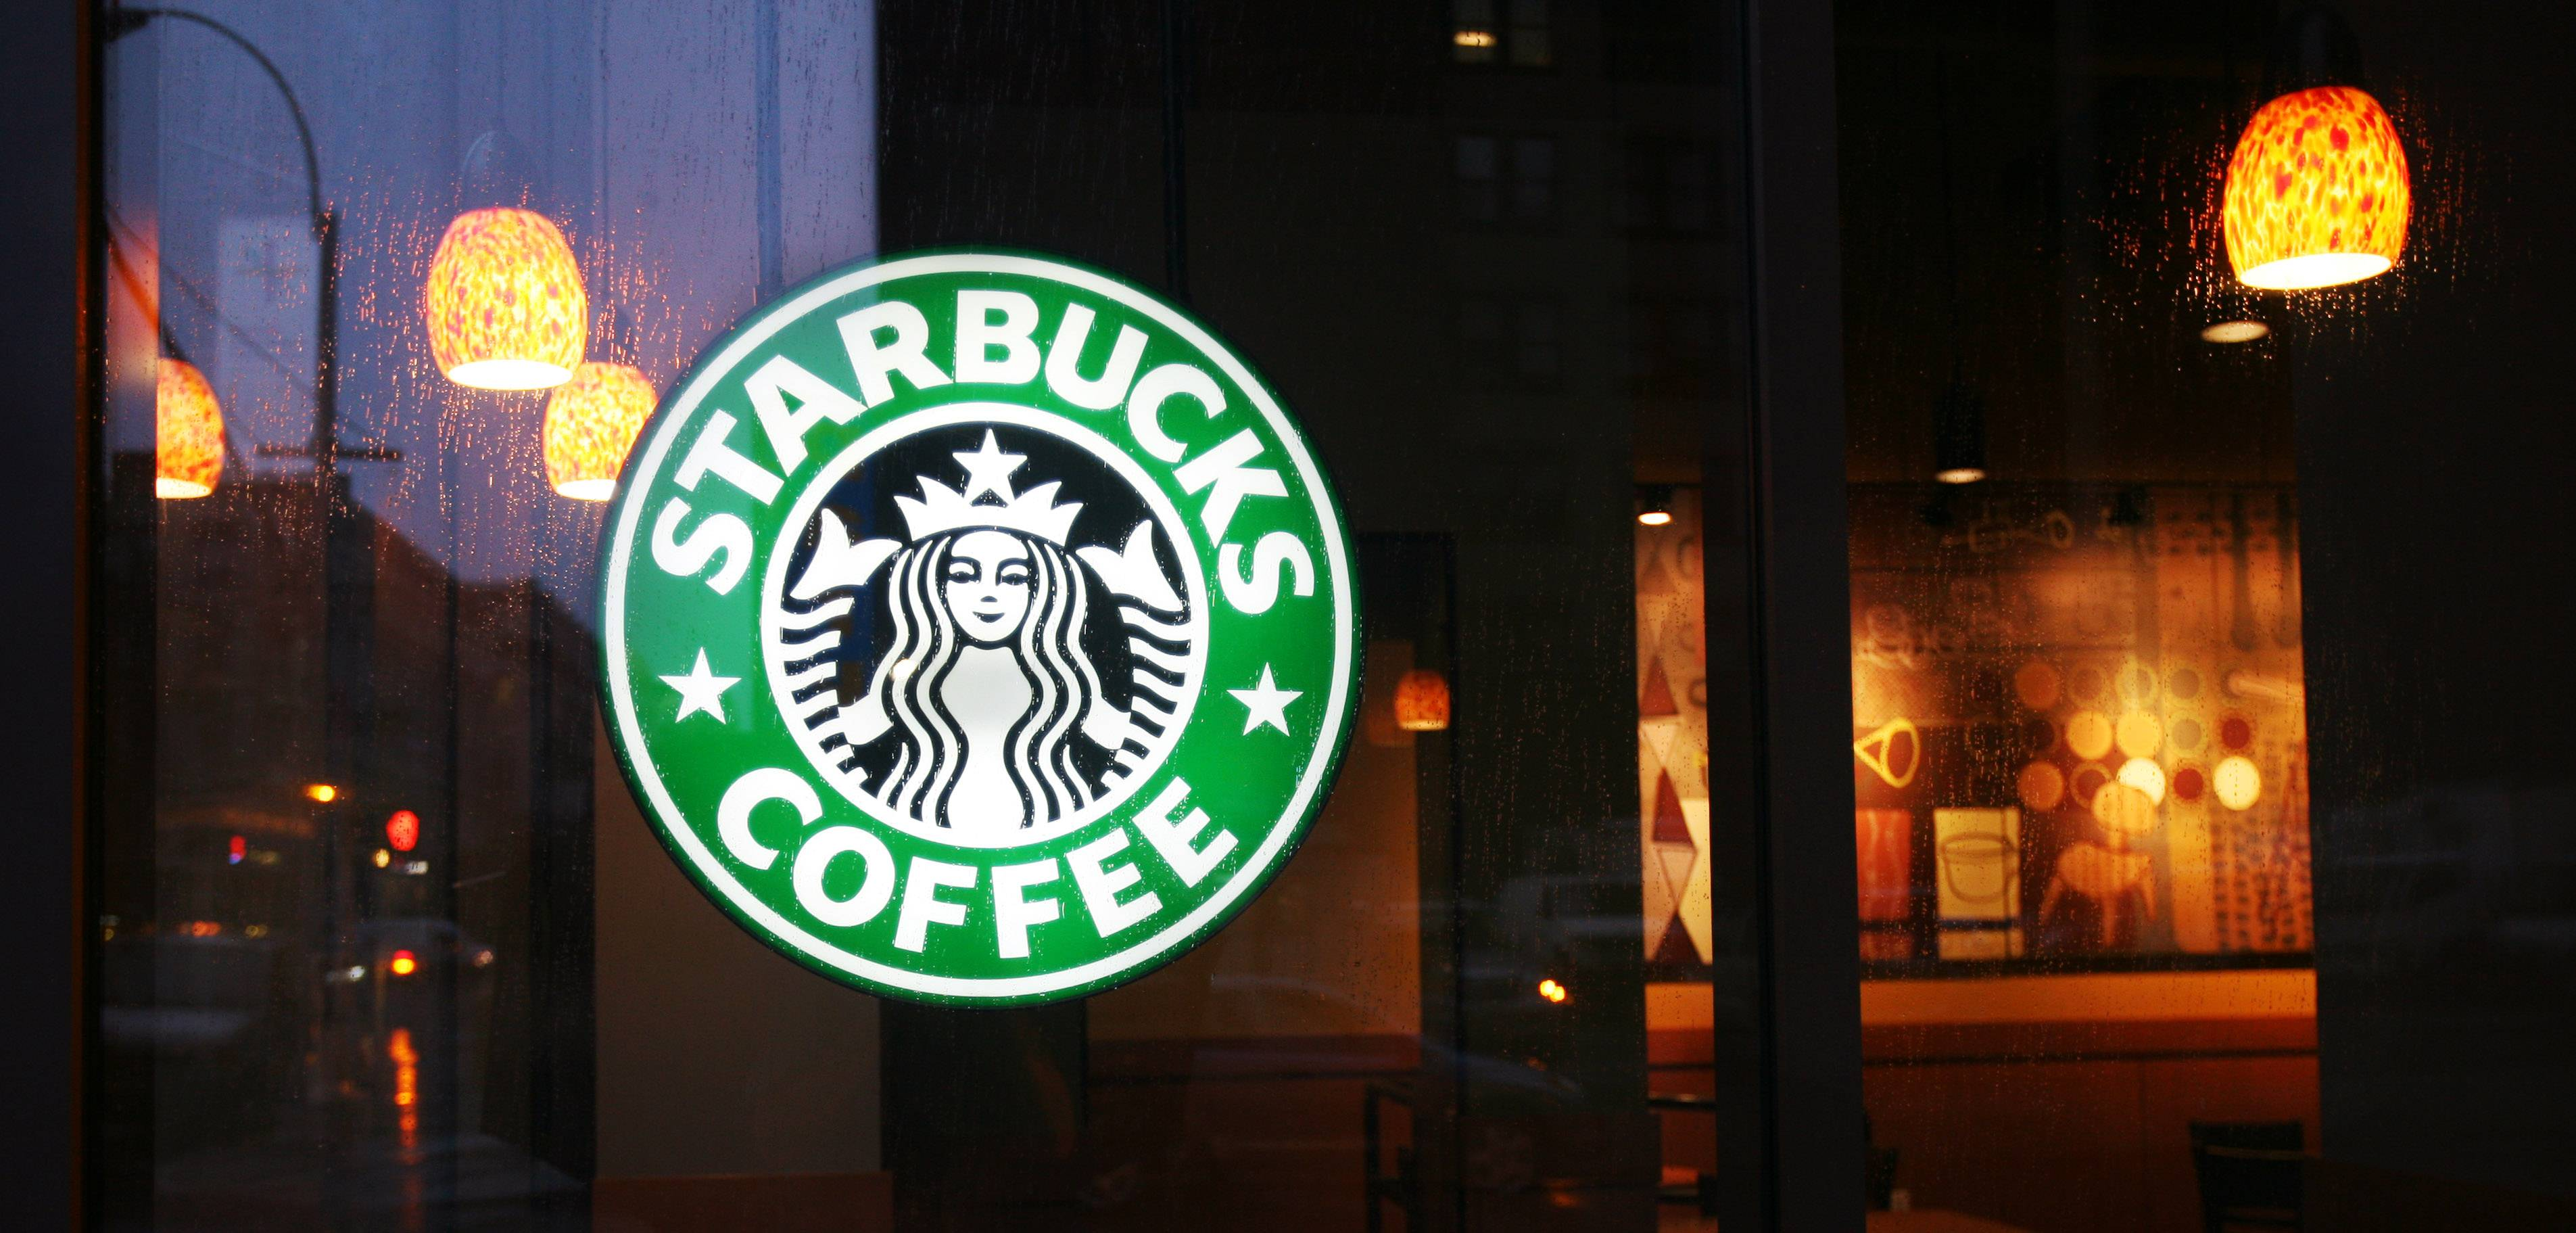 A new Starbucks is coming to Schaumburg next year as part of the renovations to the former Bally's site at 1020 N. Meacham Road. The redevelopment also will include an Egg Harbor Cafe and a yet-to-be named second restaurant.